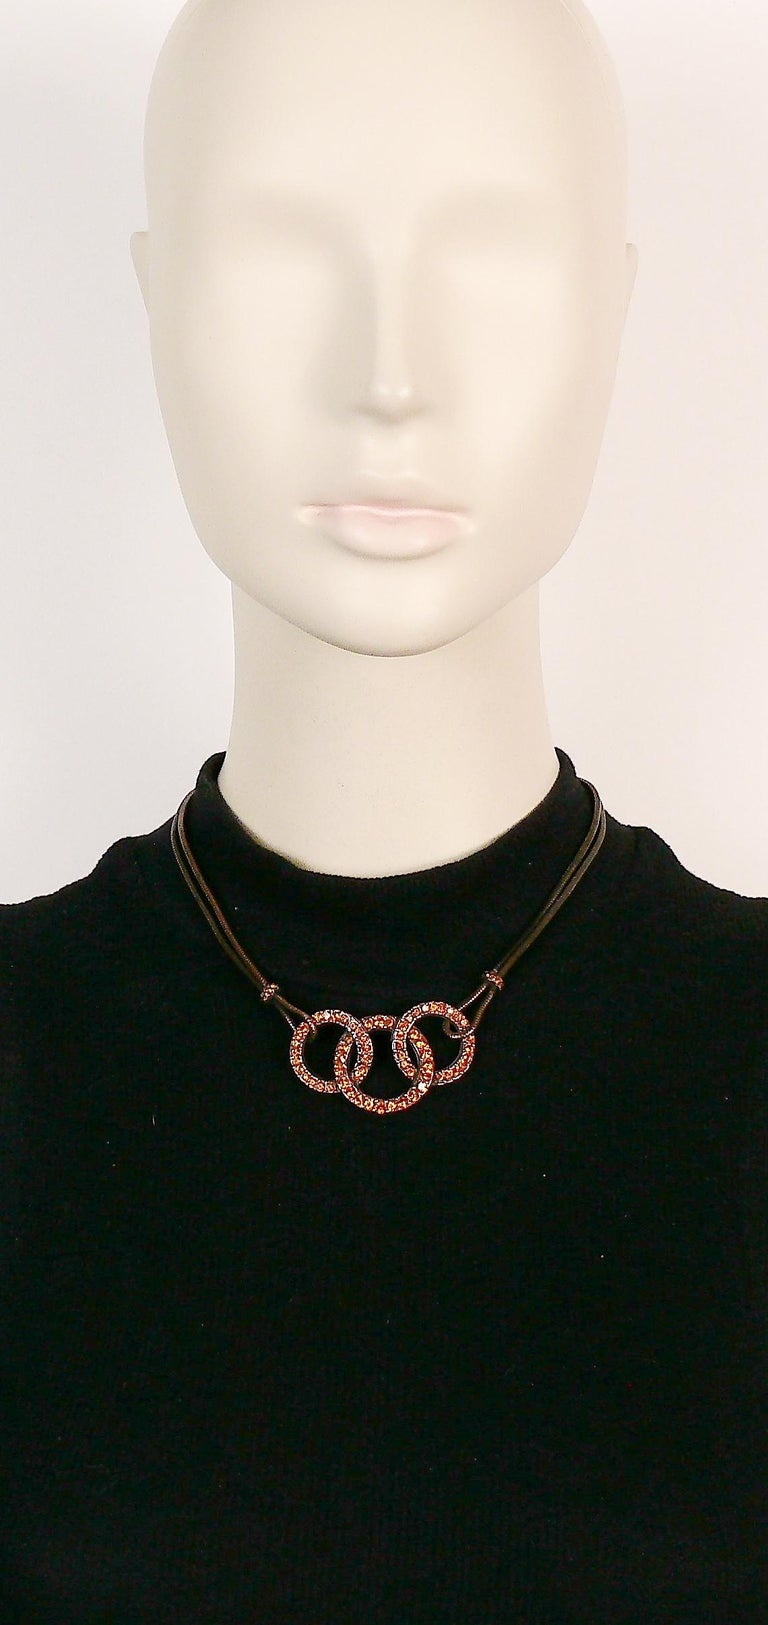 YVES SAINT LAURENT vintage antiqued copper toned necklace featuring a double snake chain and three intertwined rings embellished with citrine color crystals.  Adjustable T-bar and toggle closure.  Embossed YSL Made in France.  Indicative